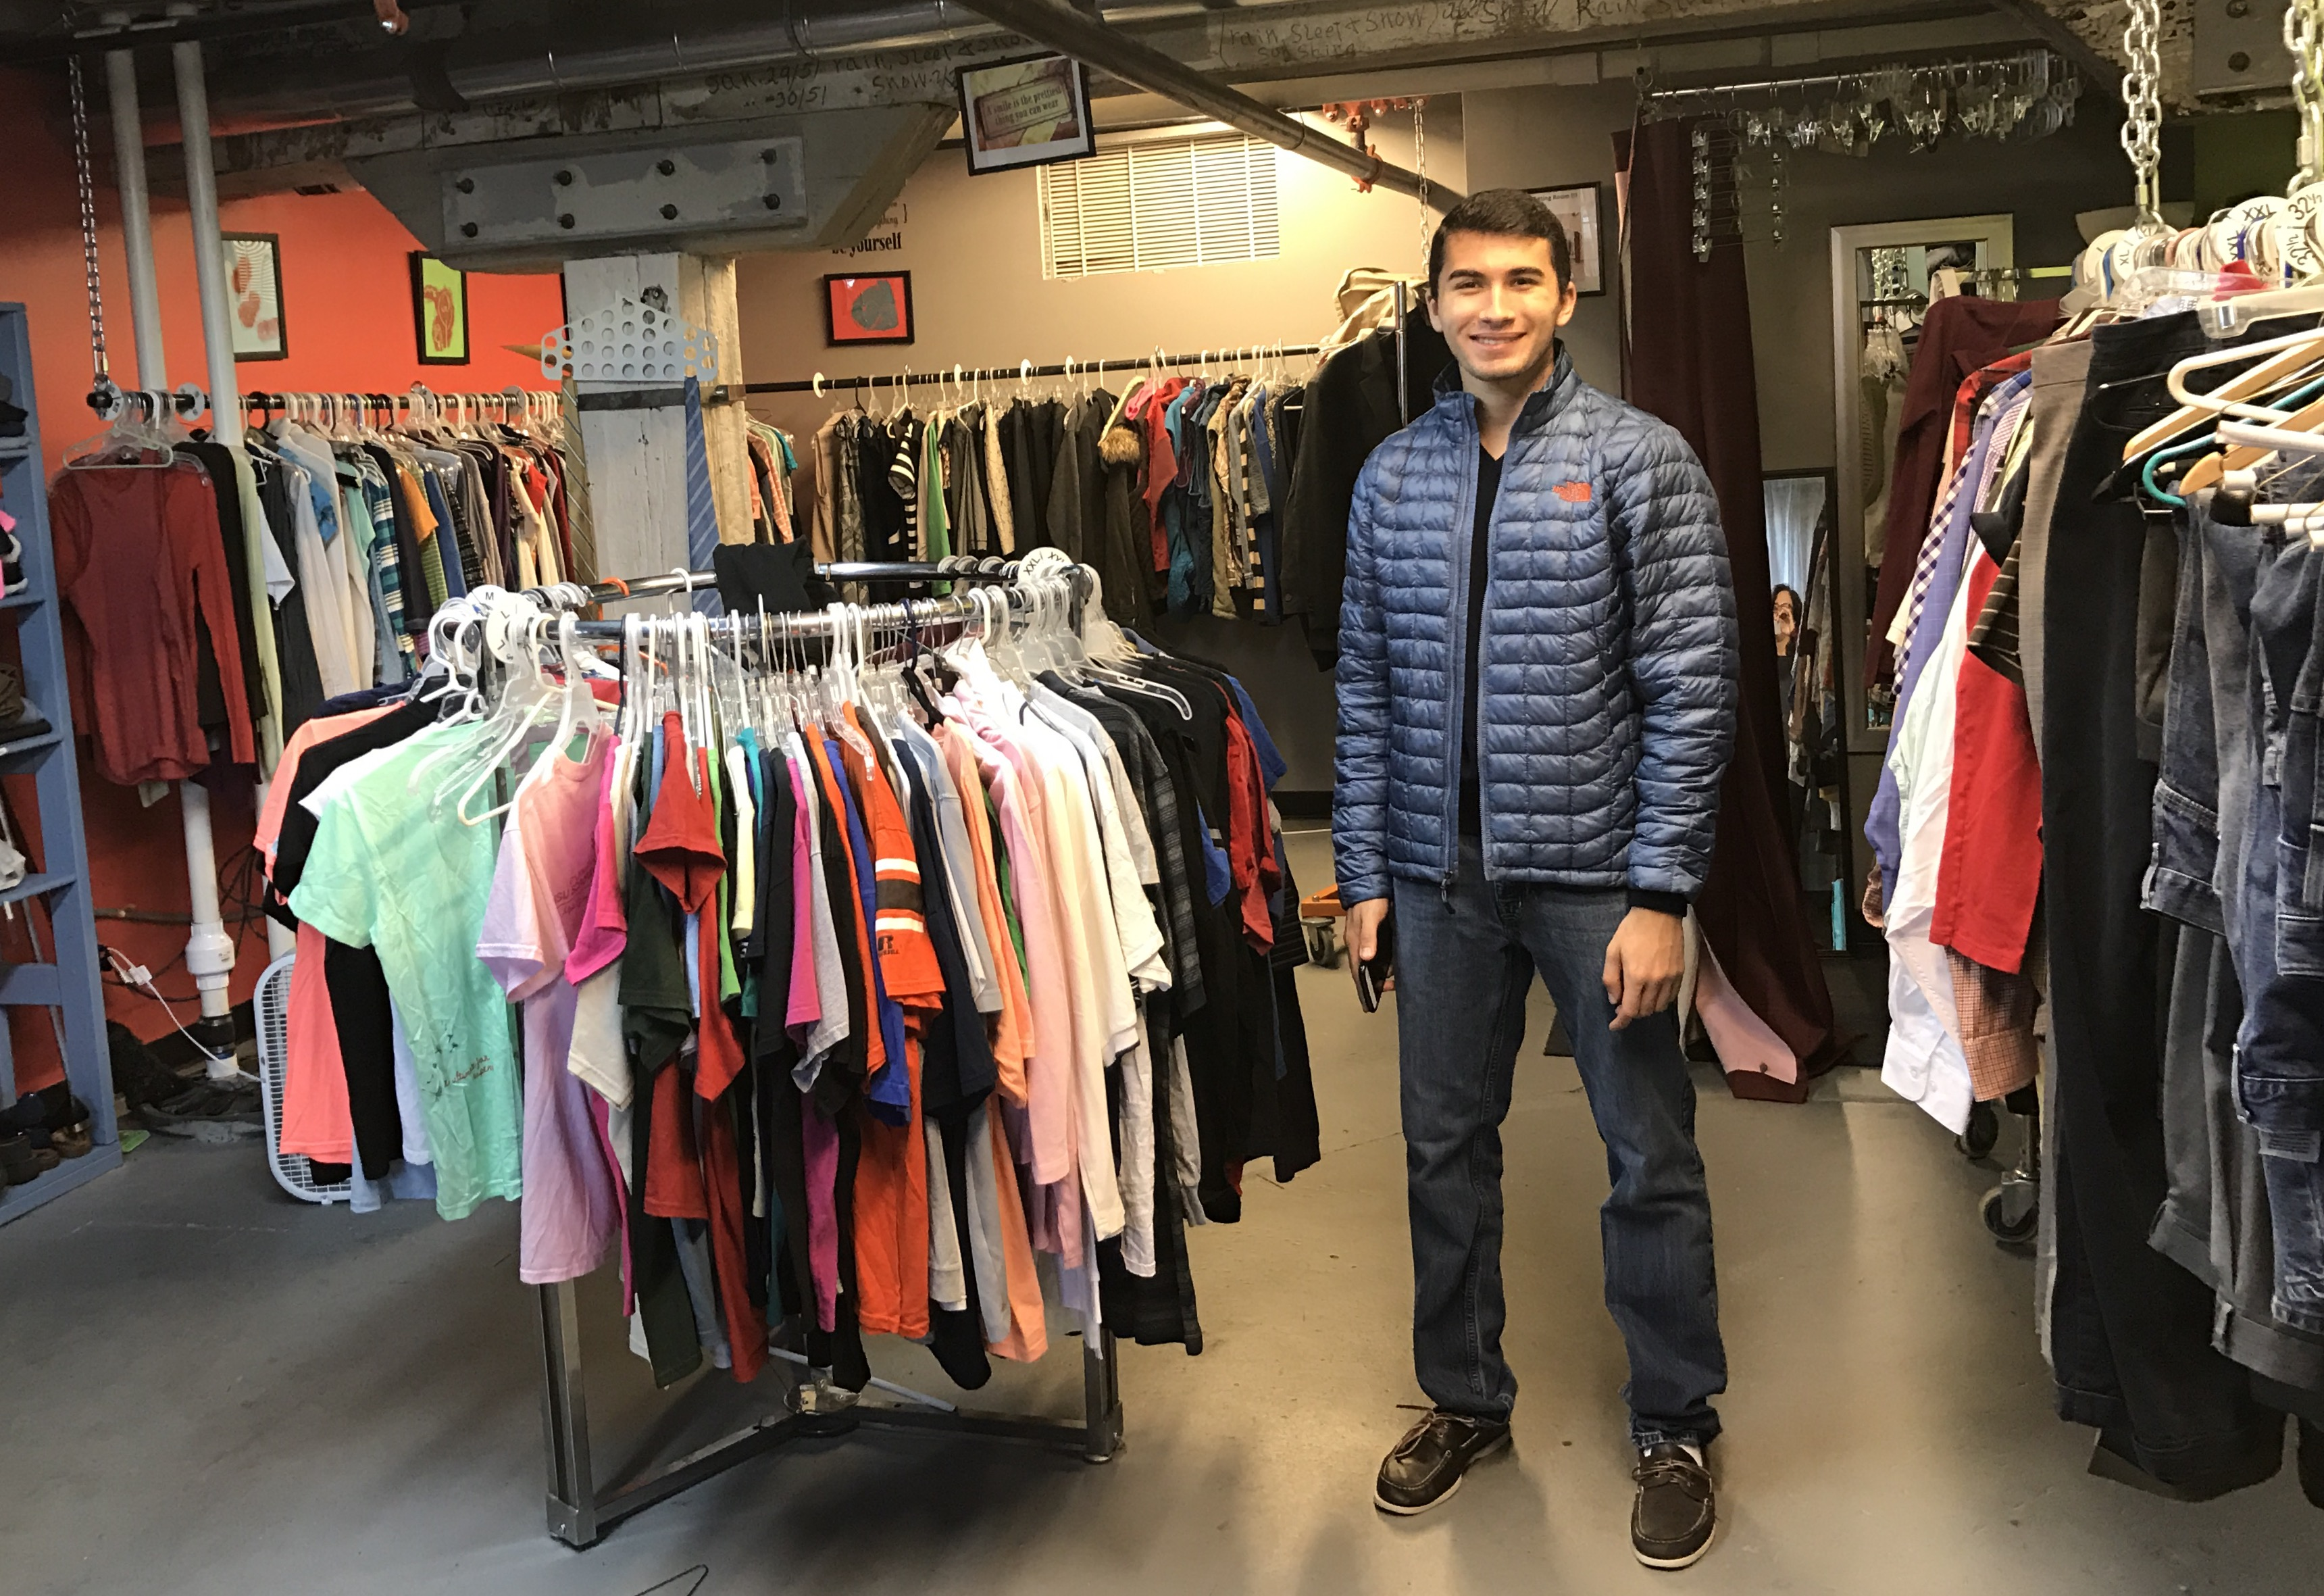 Zach at The Oasis Center's Teen Closet